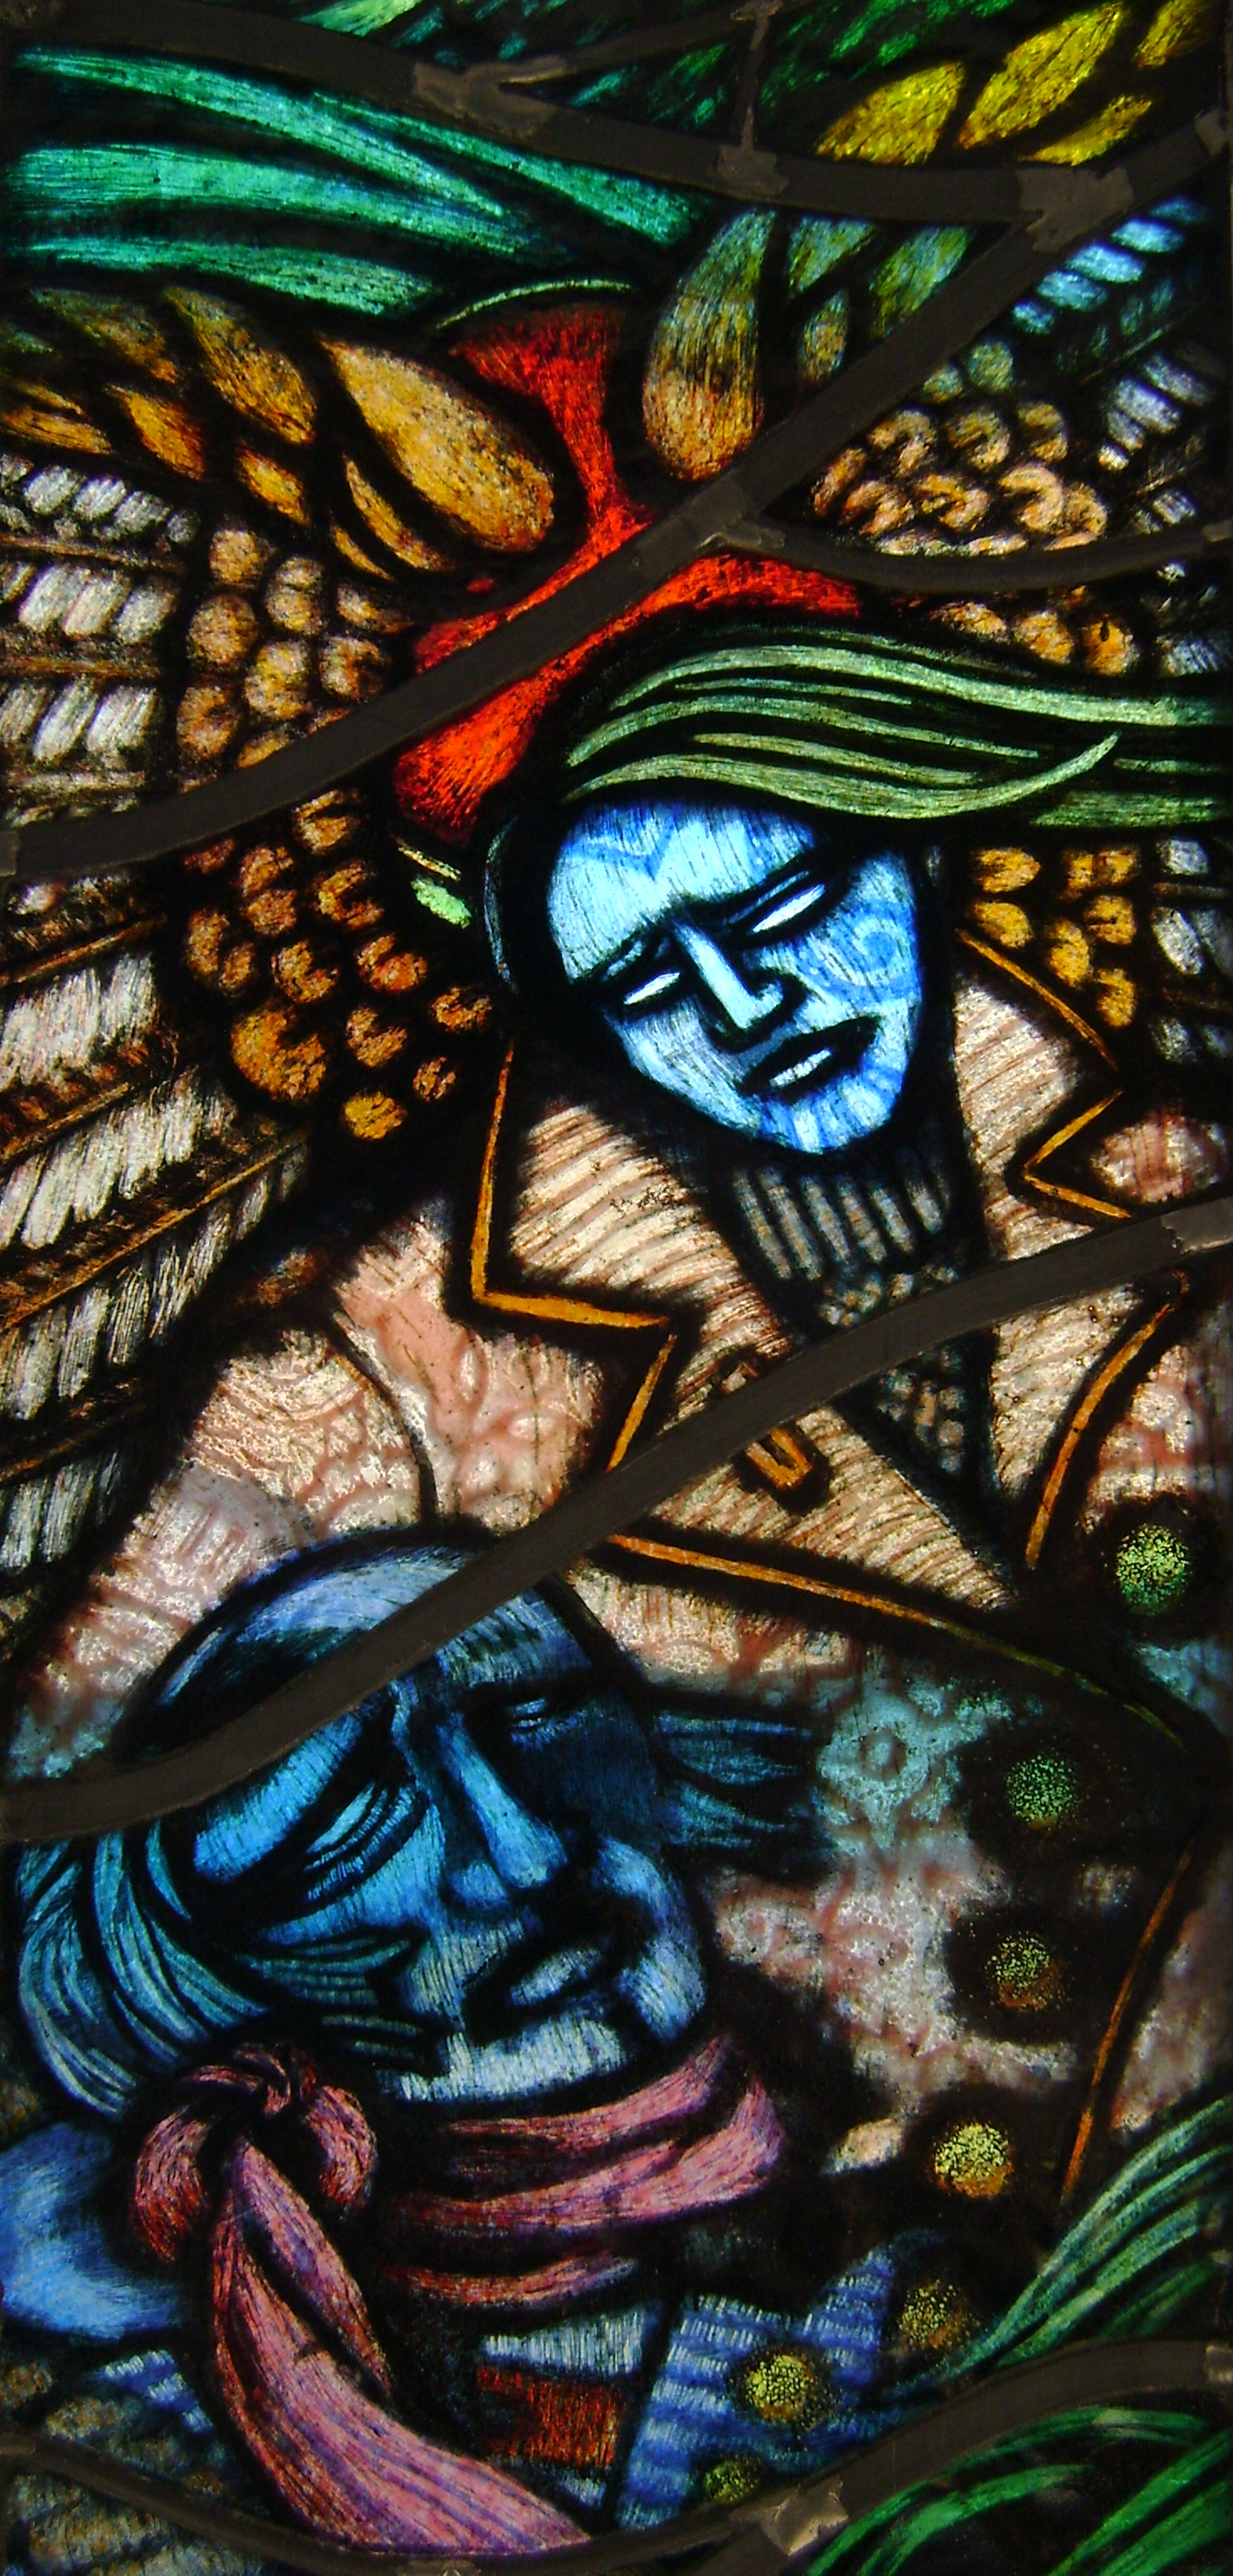 Sailor's Savior - detail 1